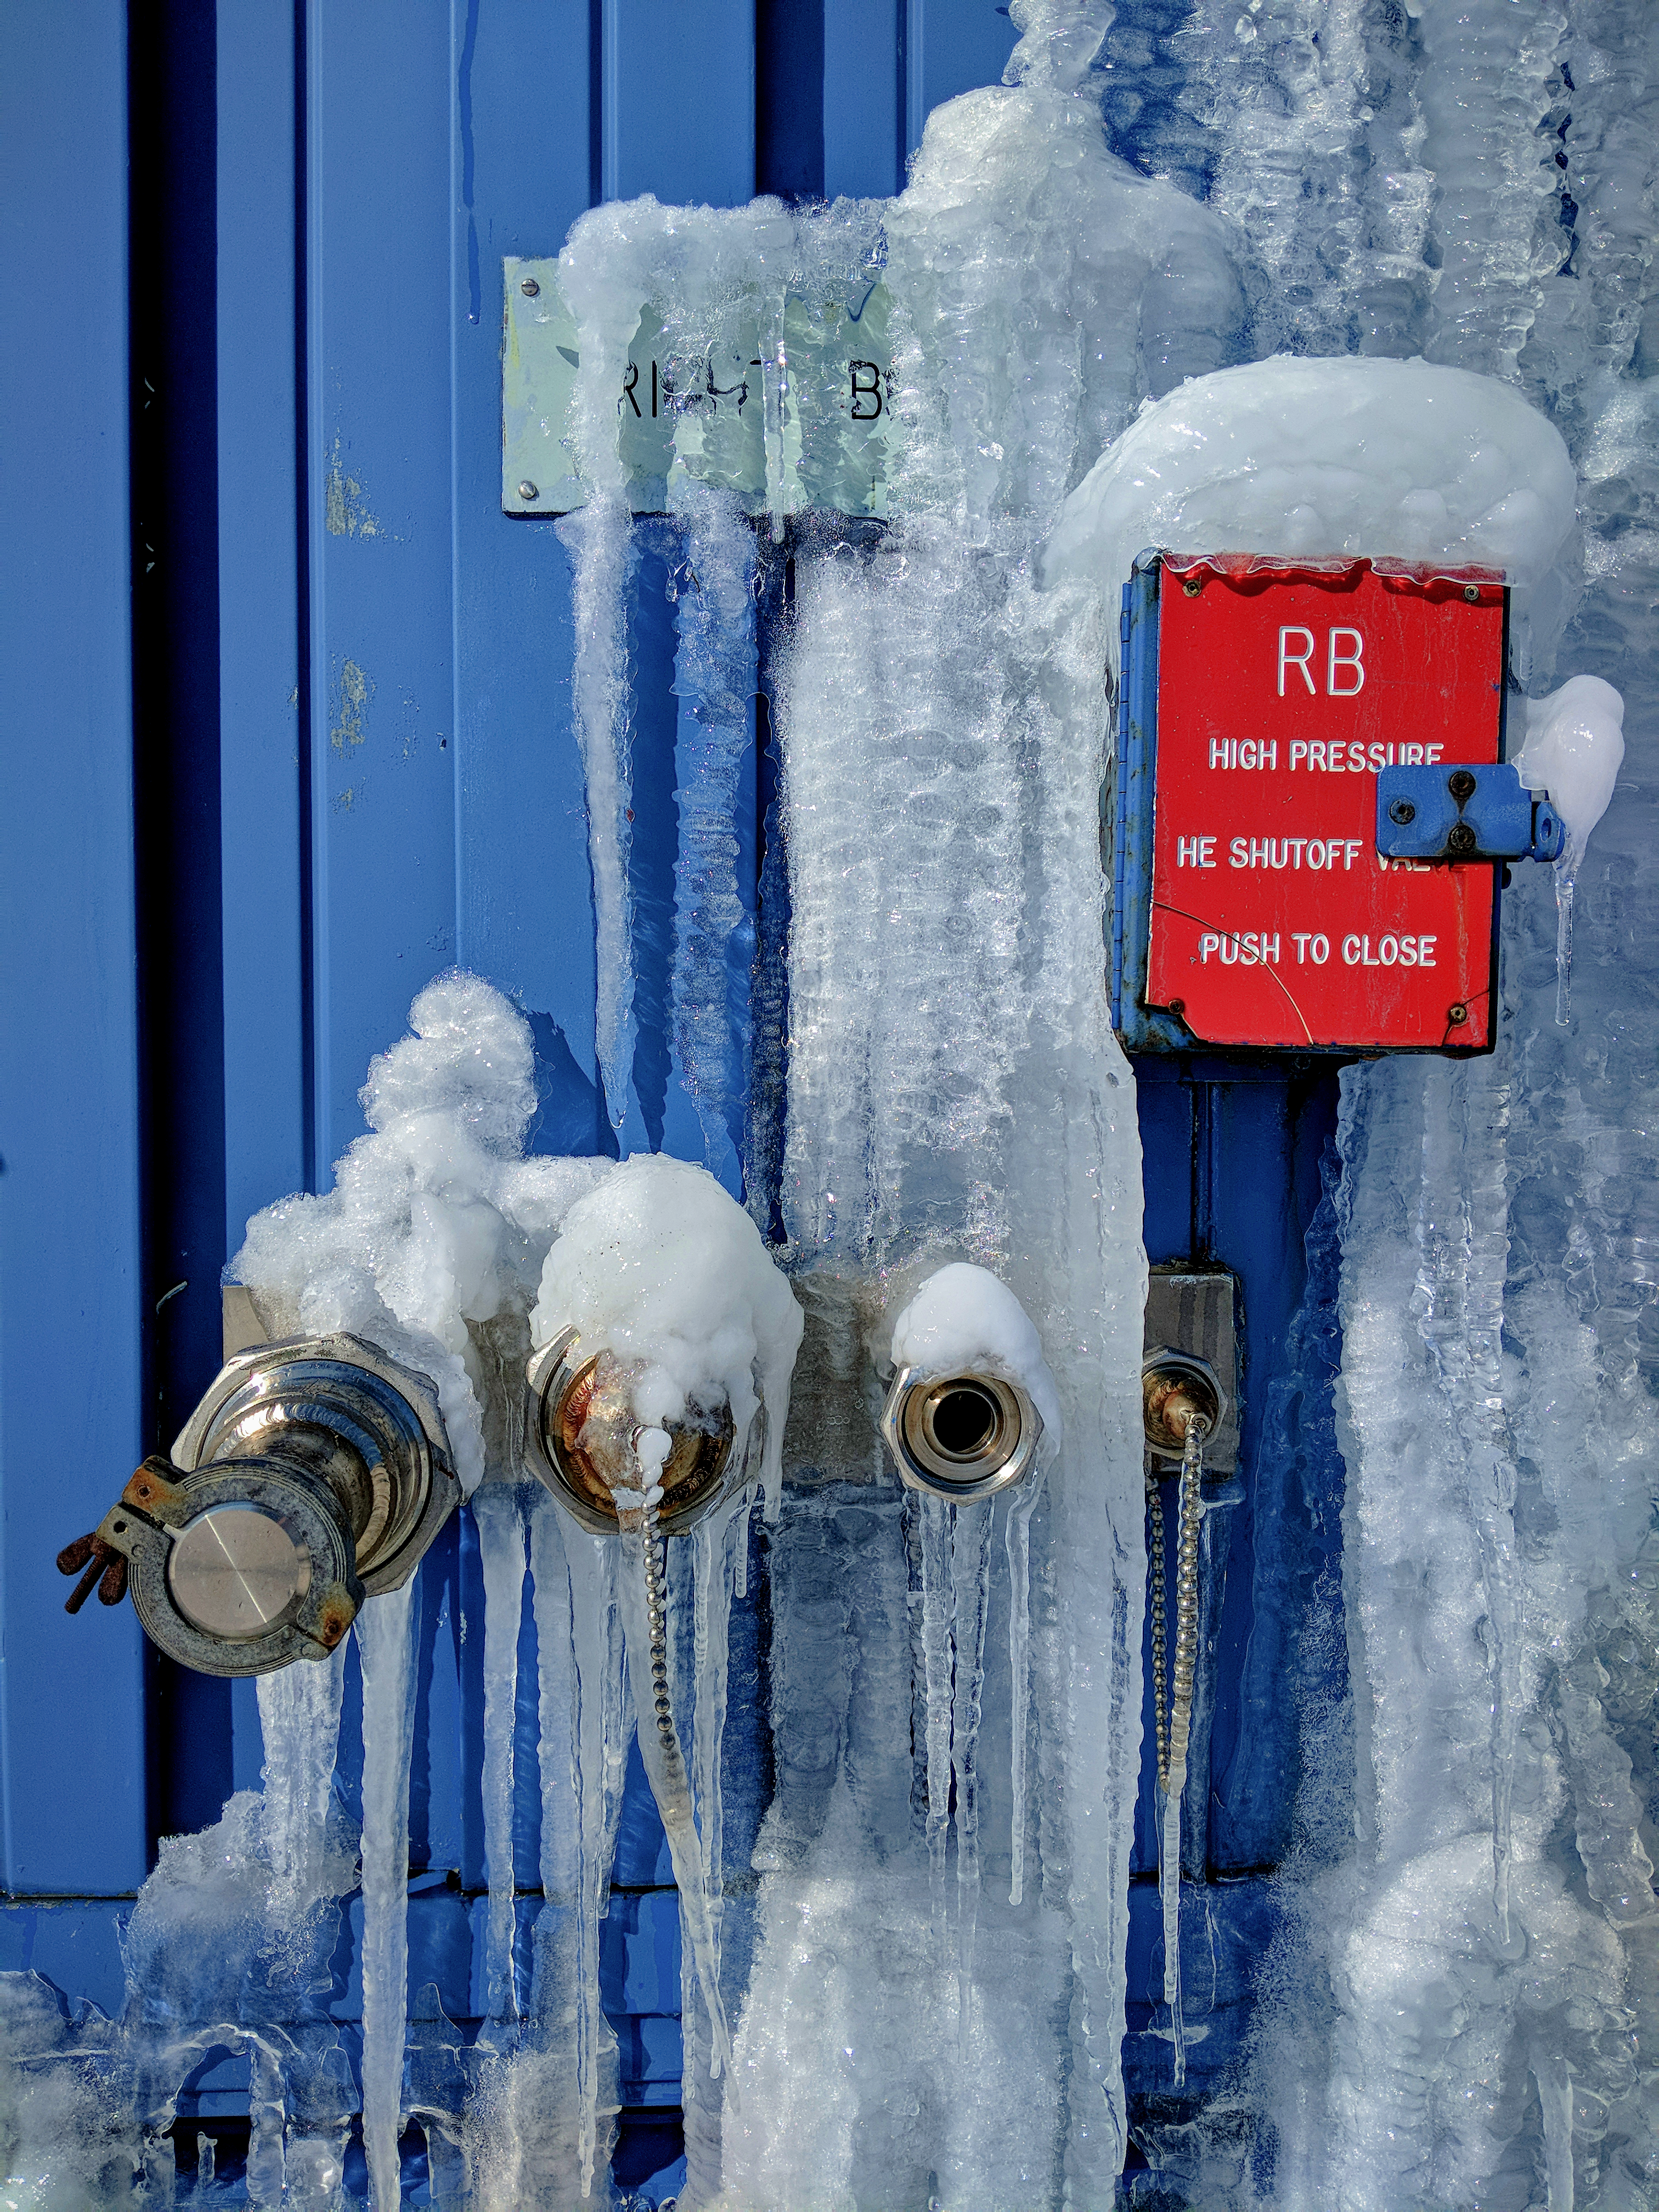 Dripping water at the Switchyard Service Building forms a waterfall of ice. Photo: Mark Kaletka, ice, winter, frost, building